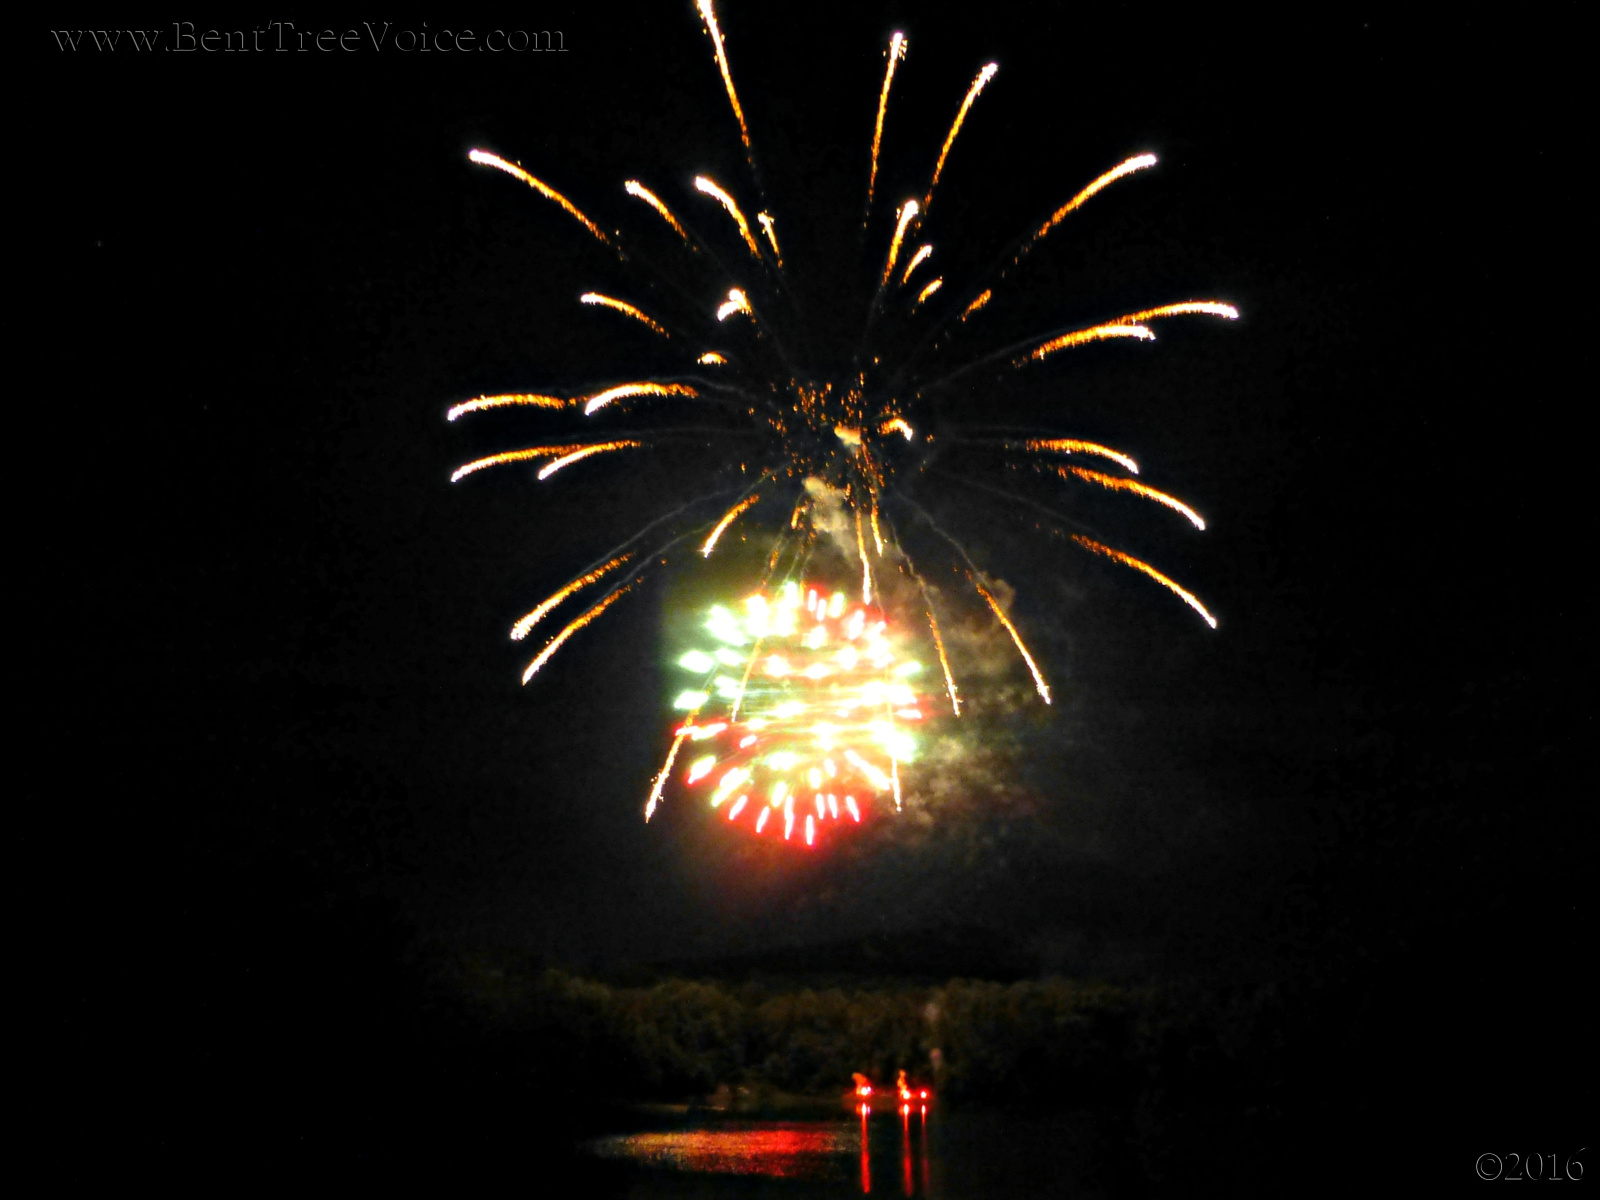 July 2, 2016 - Bent Tree fireworks over Lake Tamarack